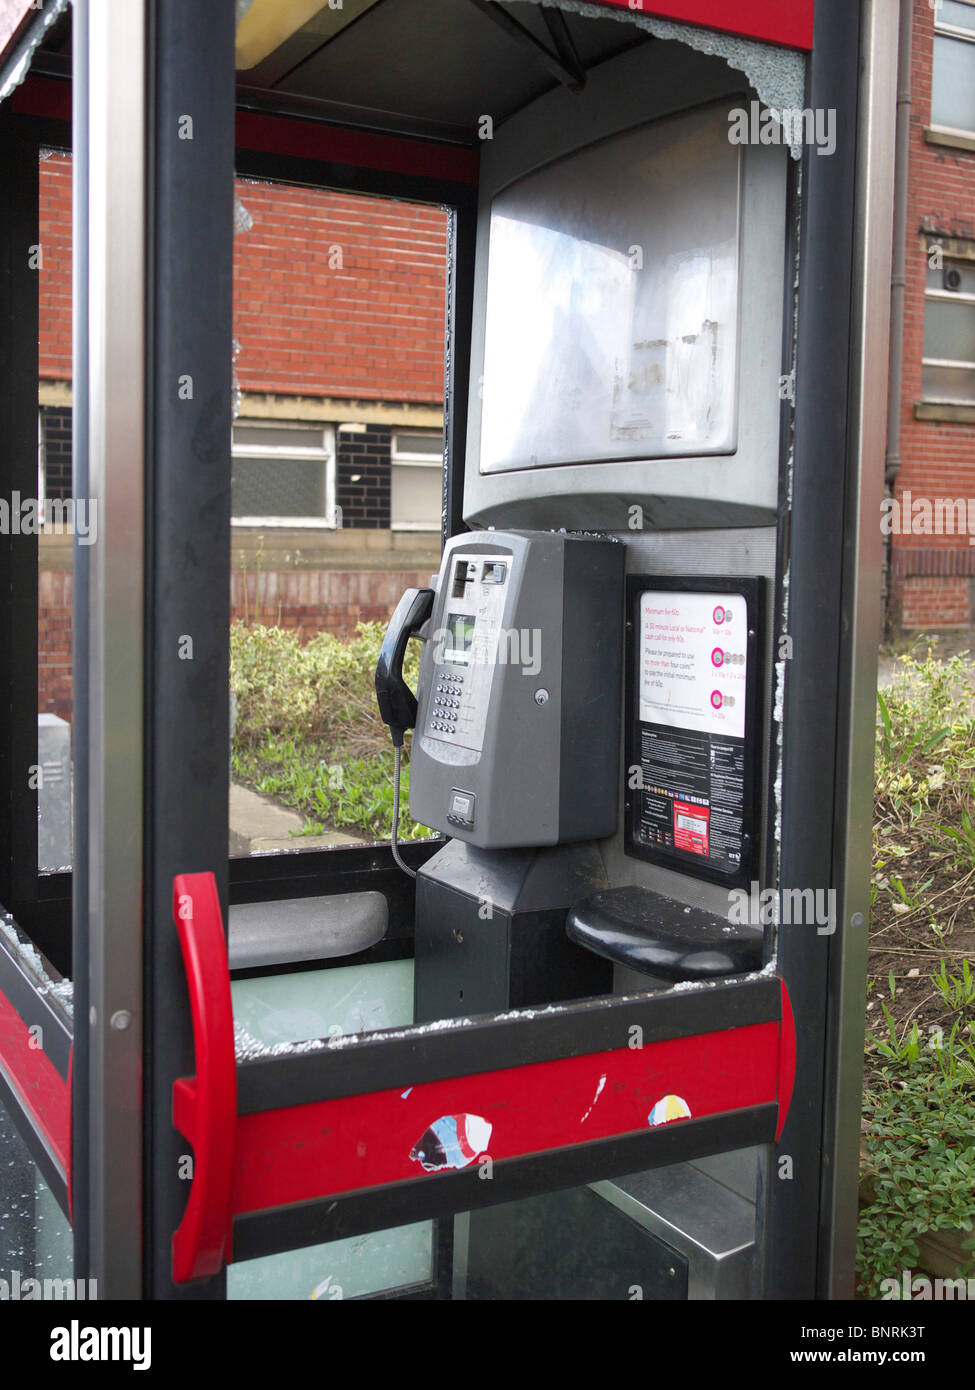 Vandalized telephone kiosk, Chadderton,Lancashire, UK - Stock Image